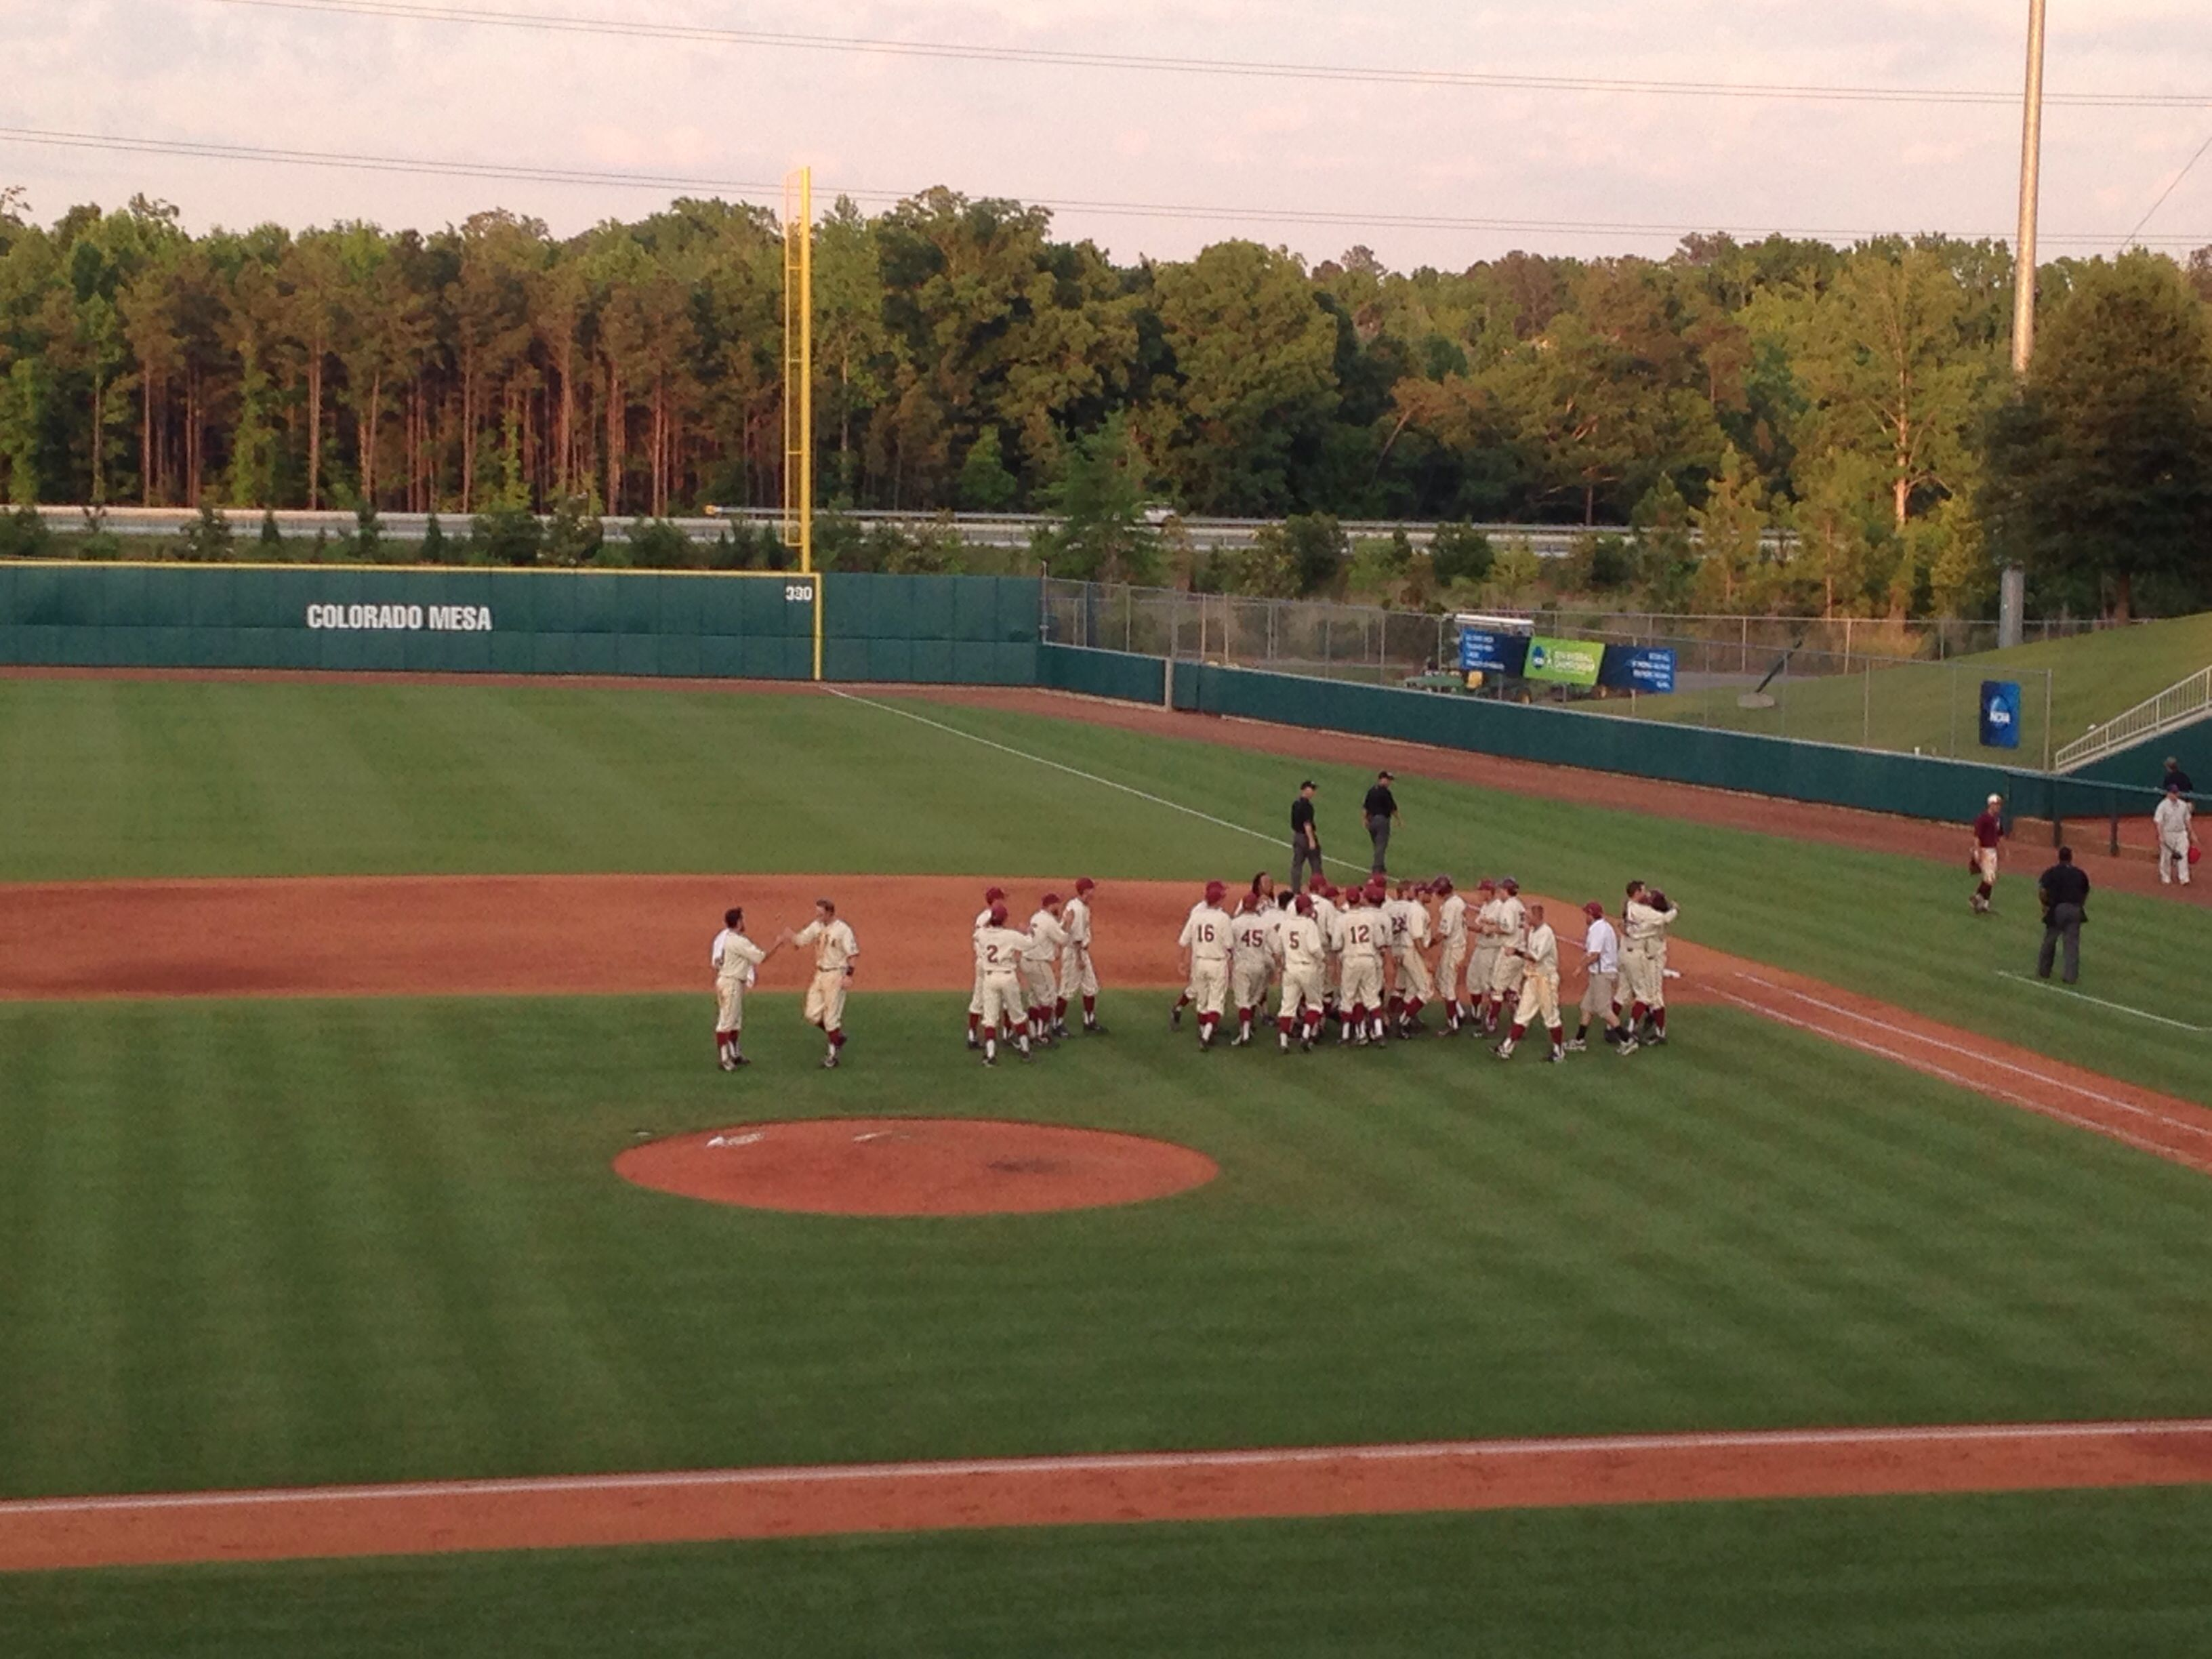 Colorado Mesa Celebrating A Walk Off Win Against St Thomas Aquinas On Sunday In The First Round Of The Division Ii College World Series Usa Baseball Colorado